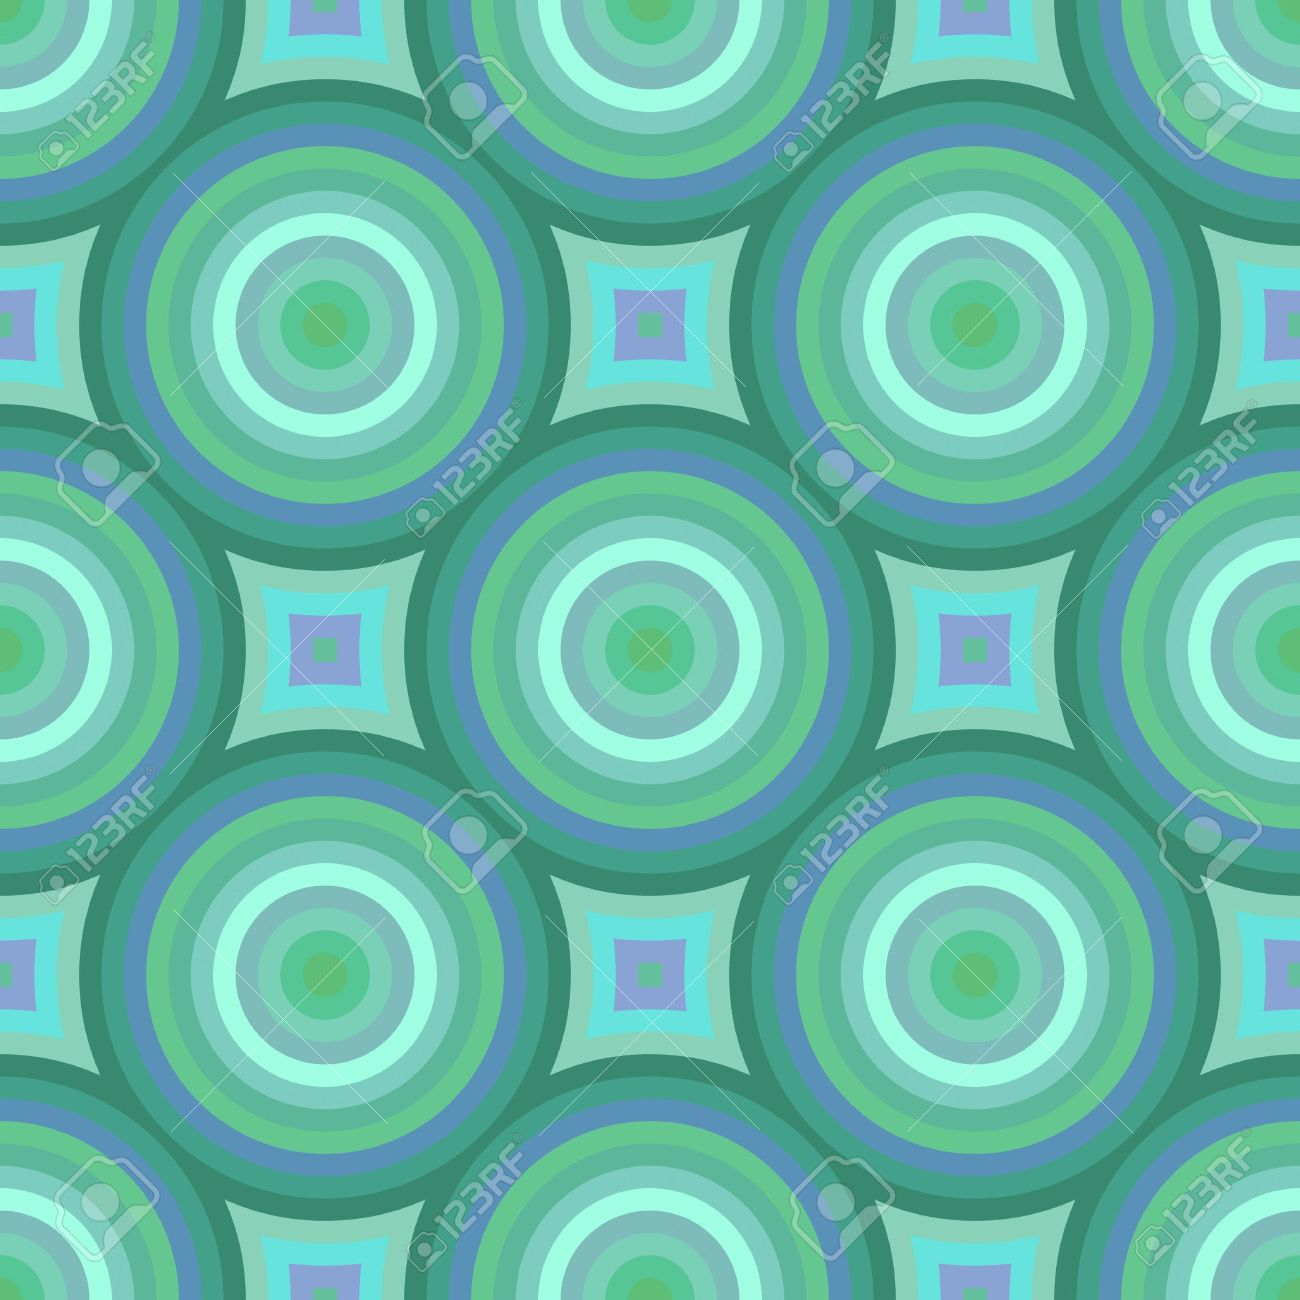 Colorful retro patterns geometric design vintage wallpaper seamless background Stock Photo - 6164340